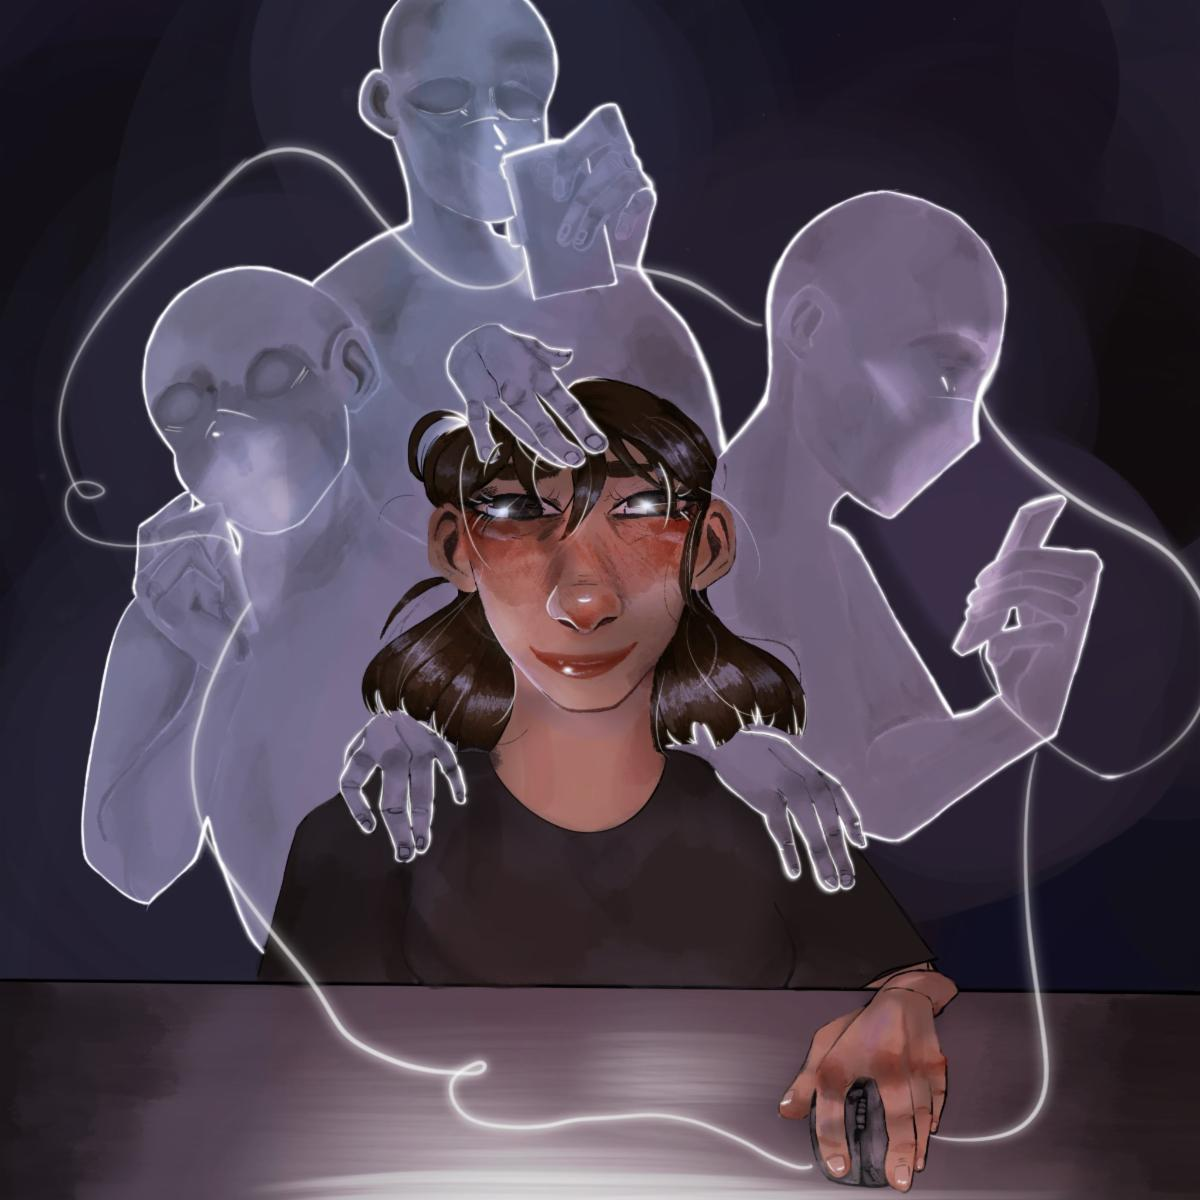 Connection by Isabella Goerman. Graphic art image of a youth experiencing a digital connection with people around the world